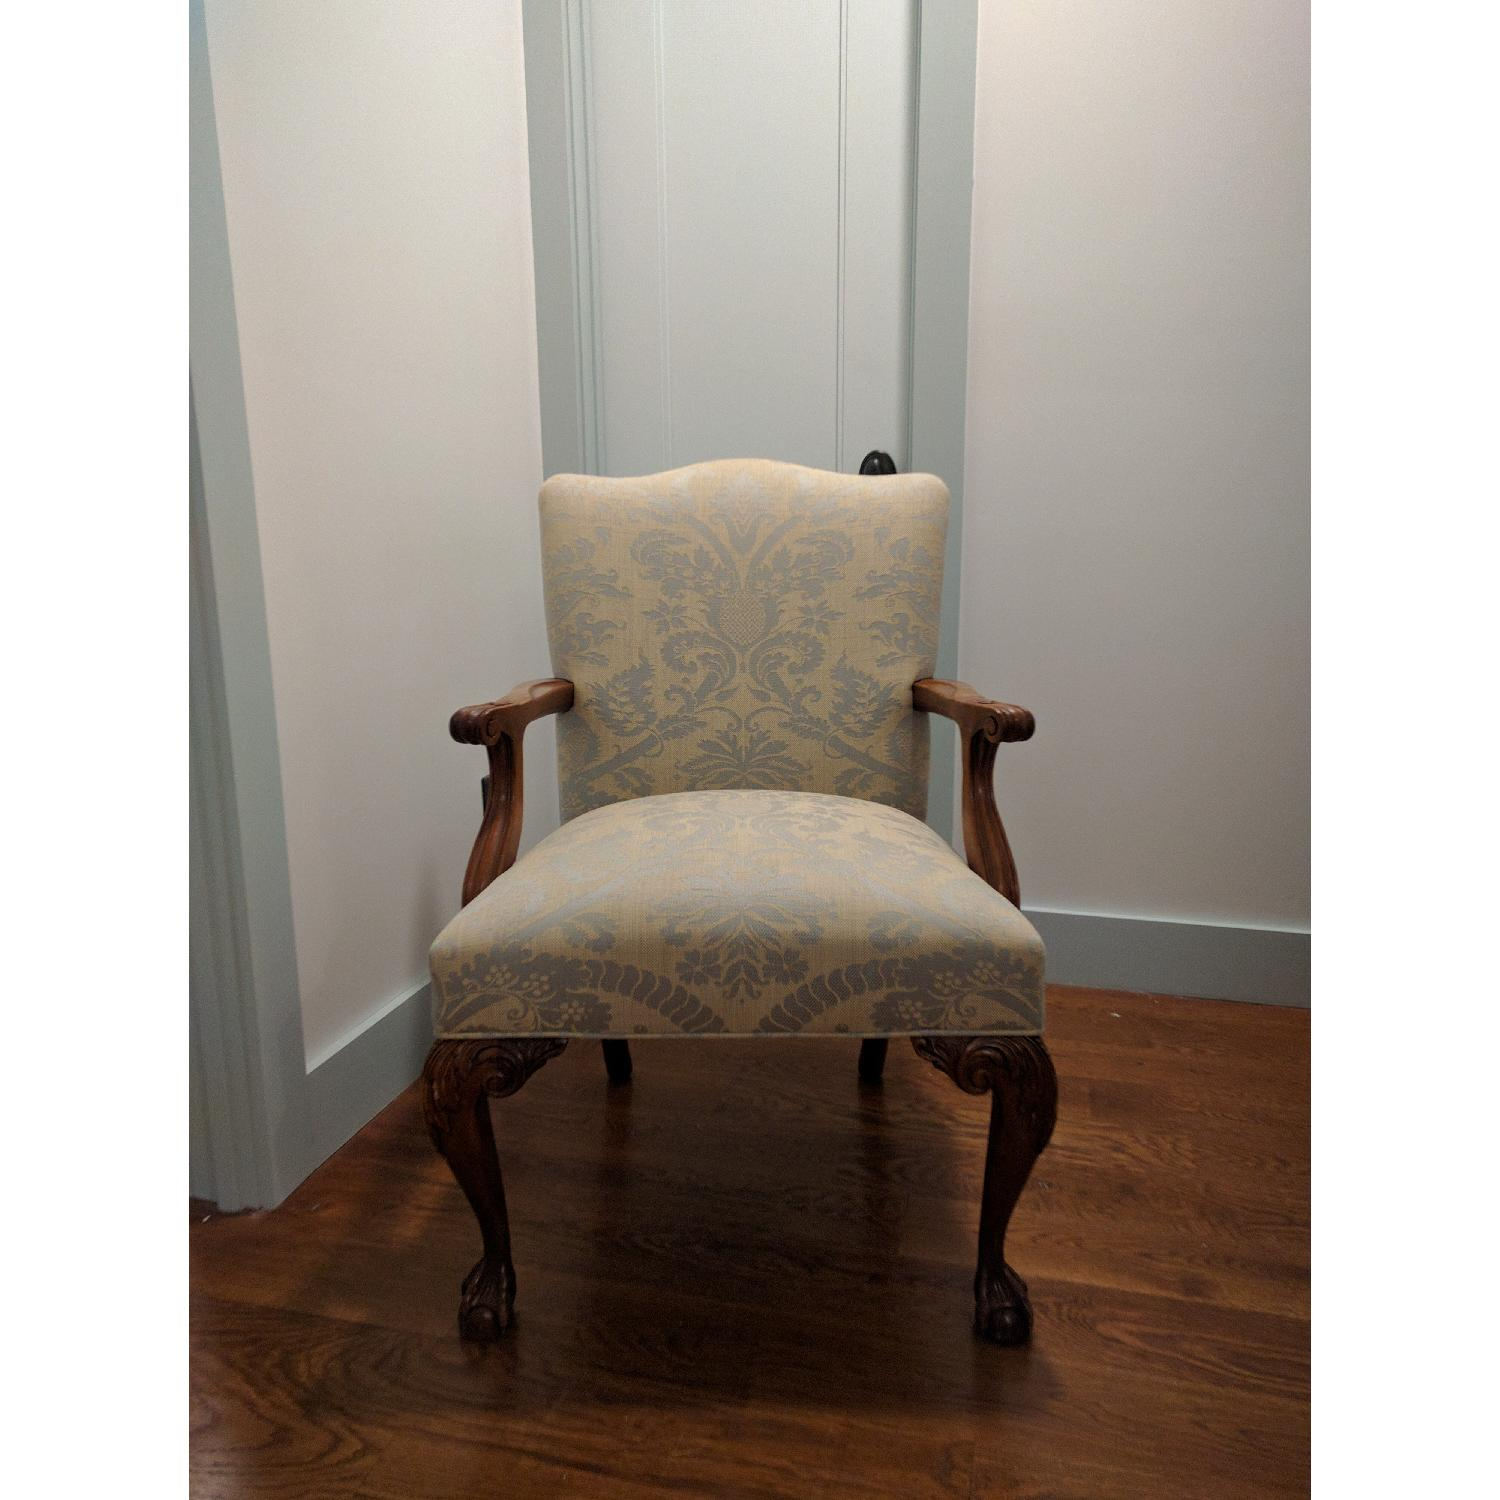 Antique Re-Upholstered Chippendale Carved Wood Chair - image-1